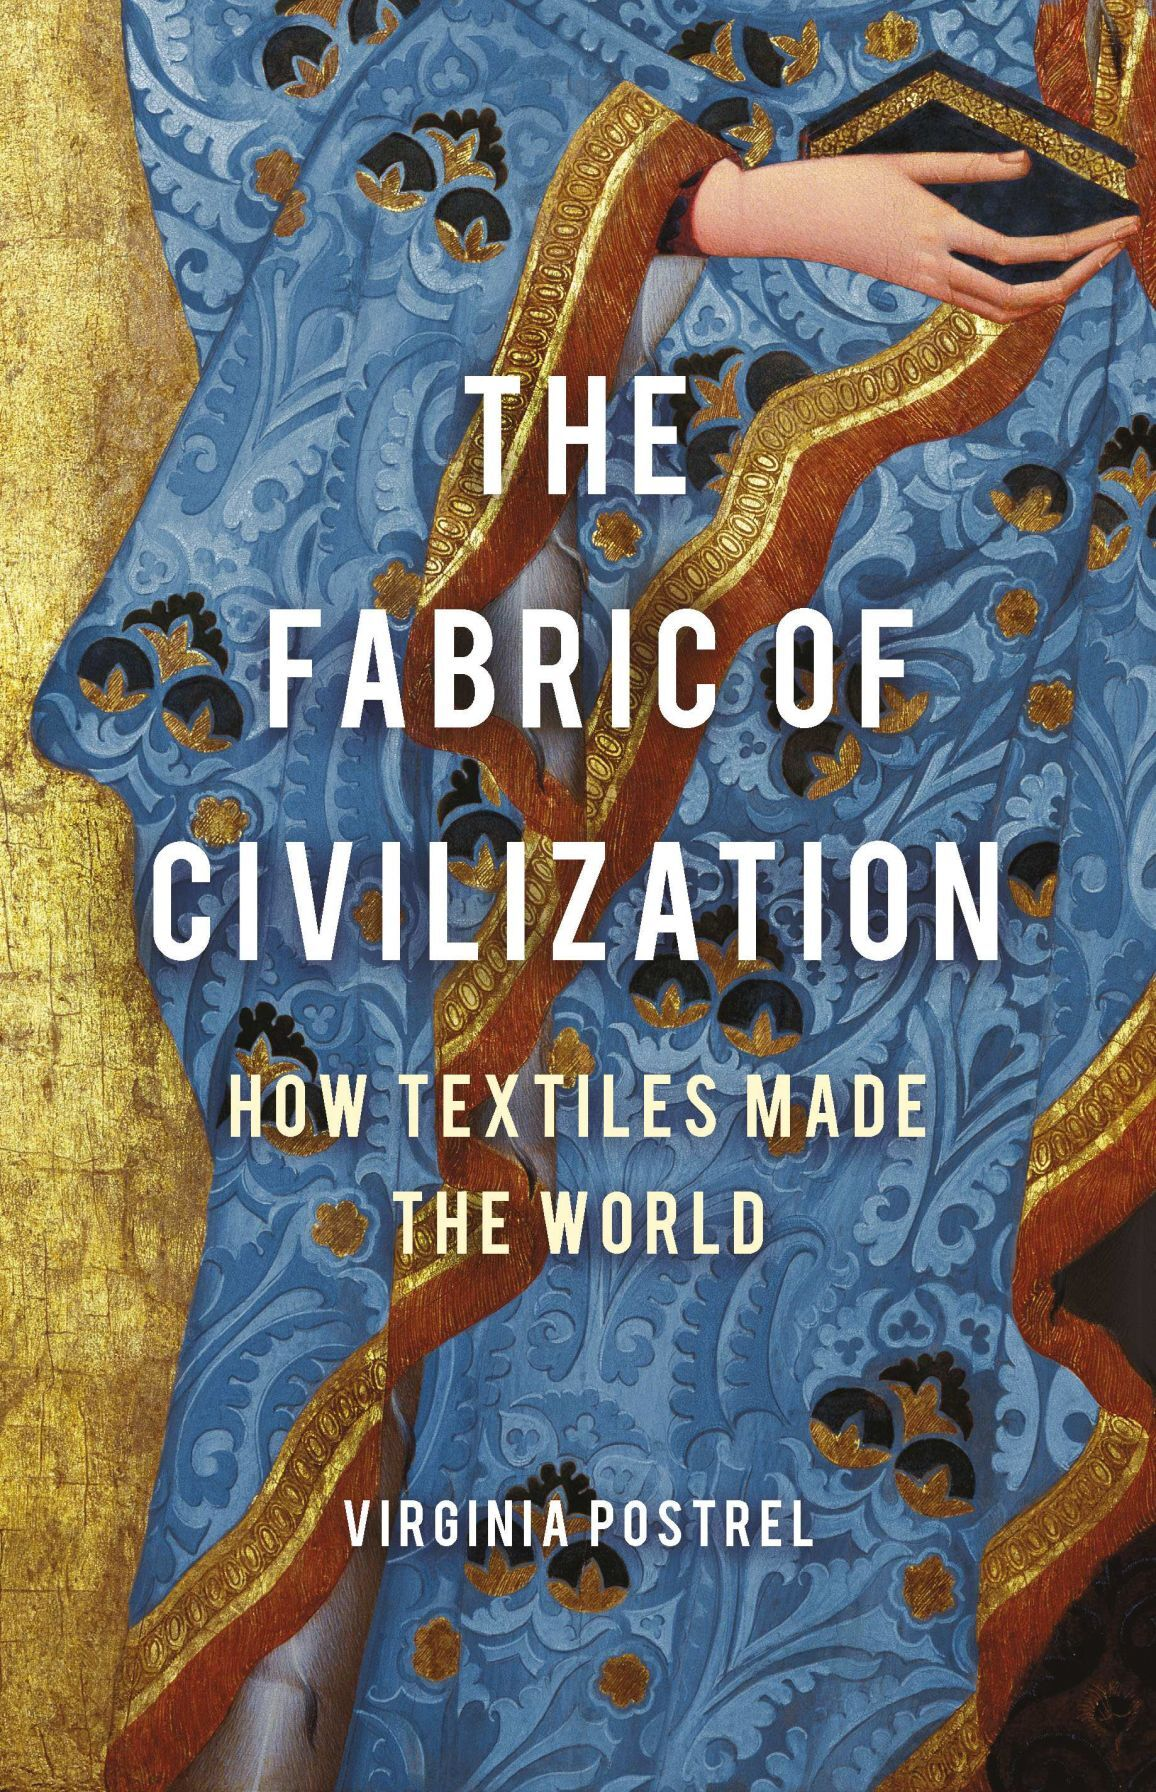 Wrap yourself in the fascinating story of 'The Fabric of Civilization' | Books | The Daily News